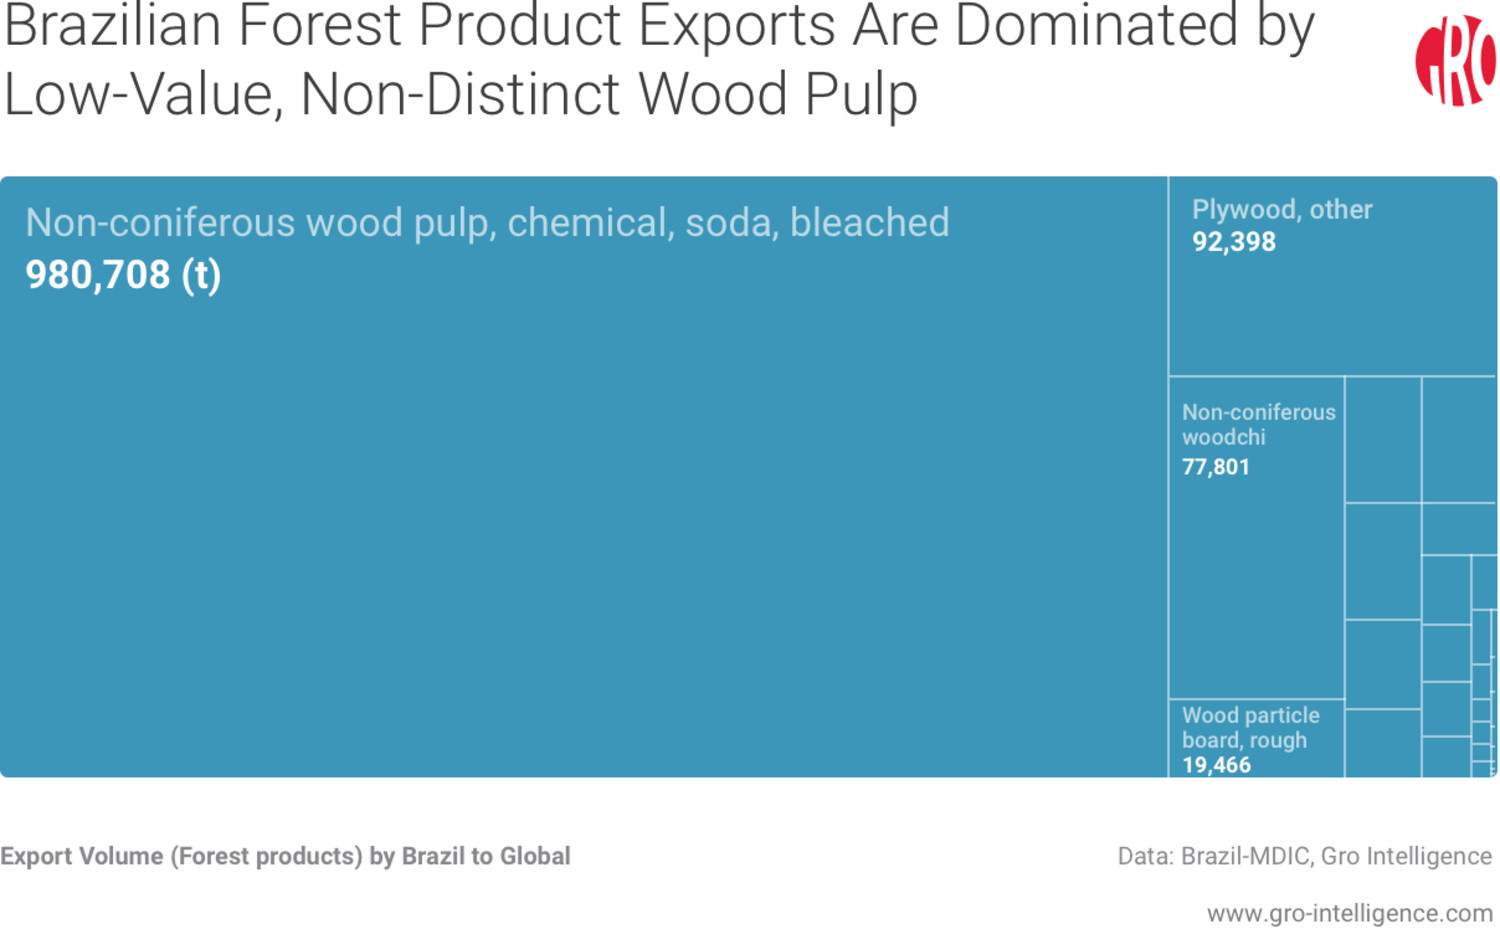 Brazilian Forest Product Exports Are Dominated by Low-Value, Non-Distinct Wood Pulp